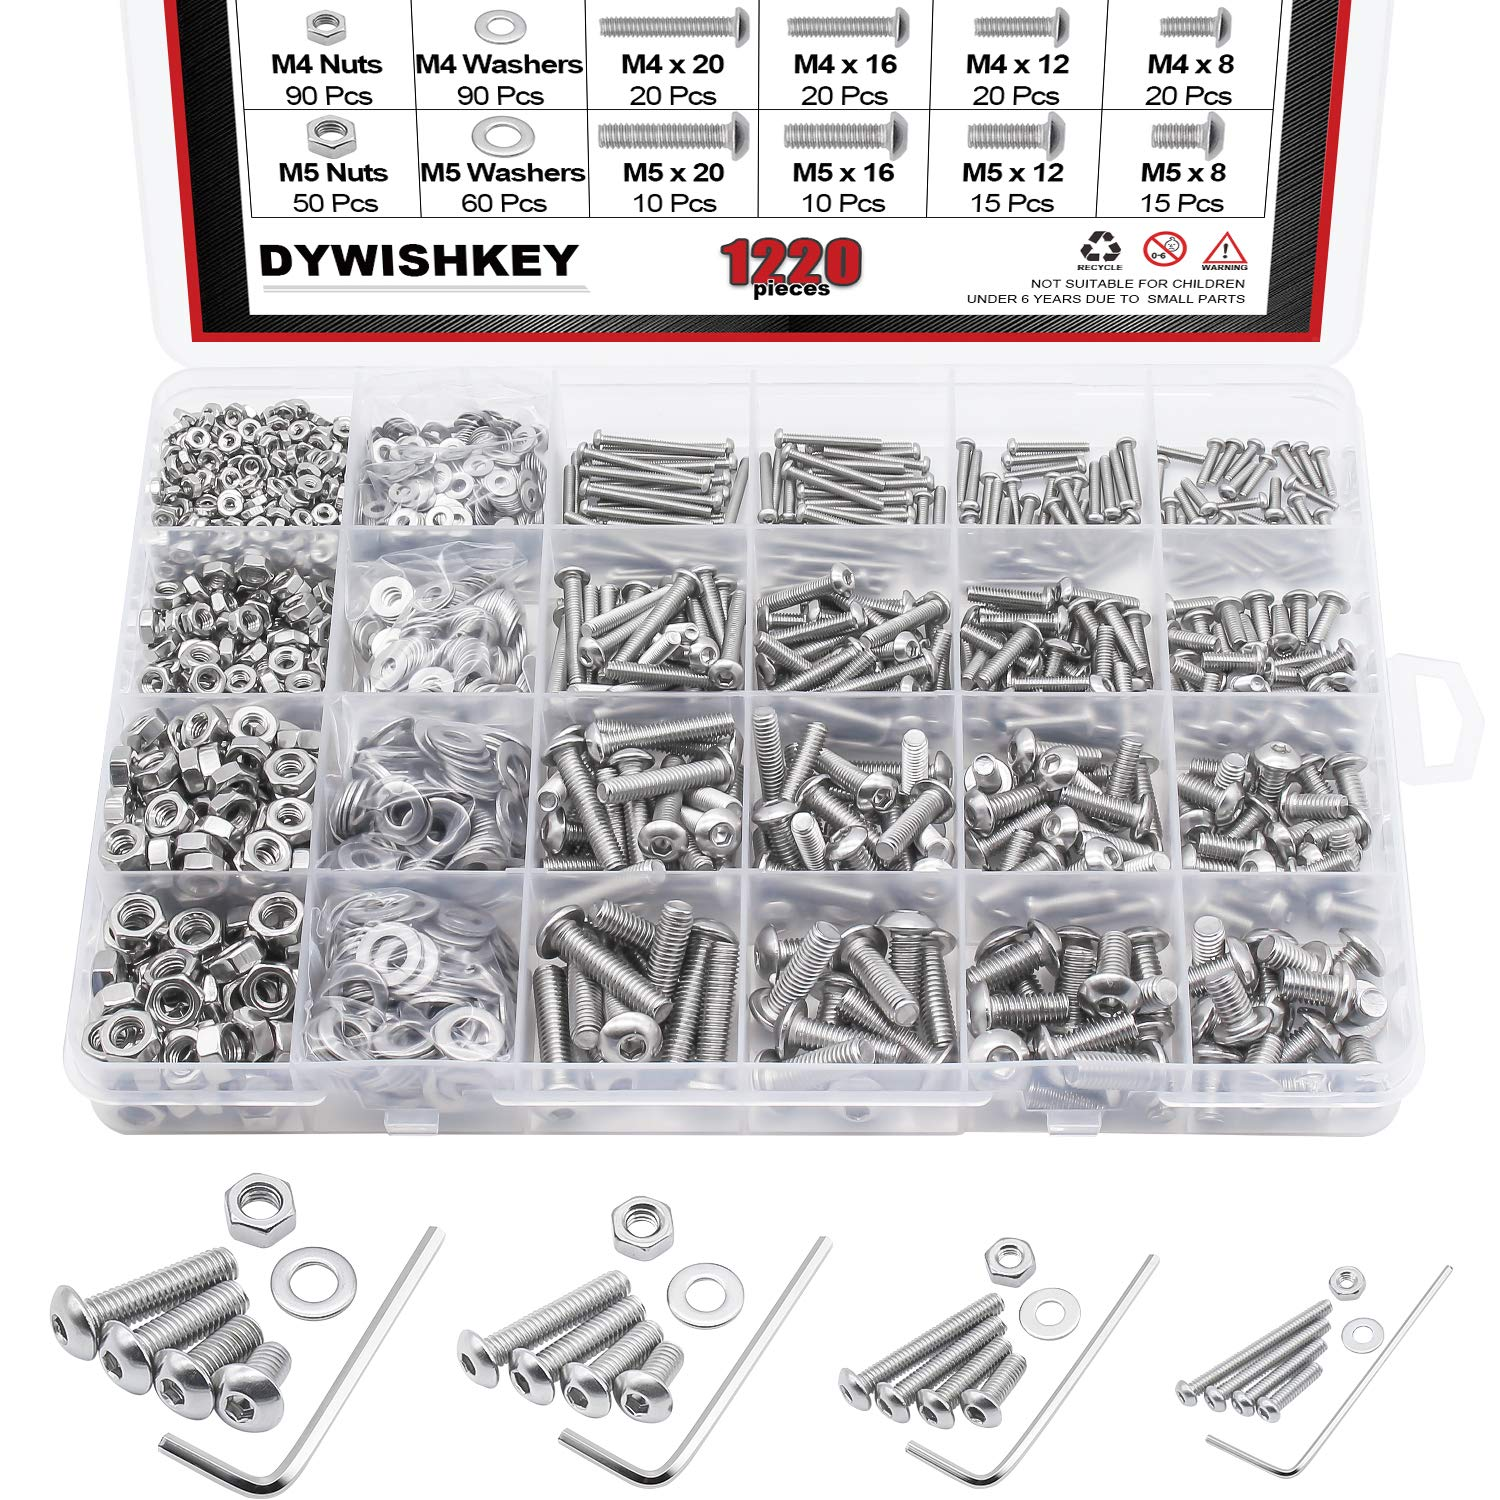 DYWISHKEY 1220 PCS M2 M3 M4 M5, 304 Stainless Steel Hex Button Head Cap Bolts Screws Nuts Washers Assortment Kit with Hex Wrenches